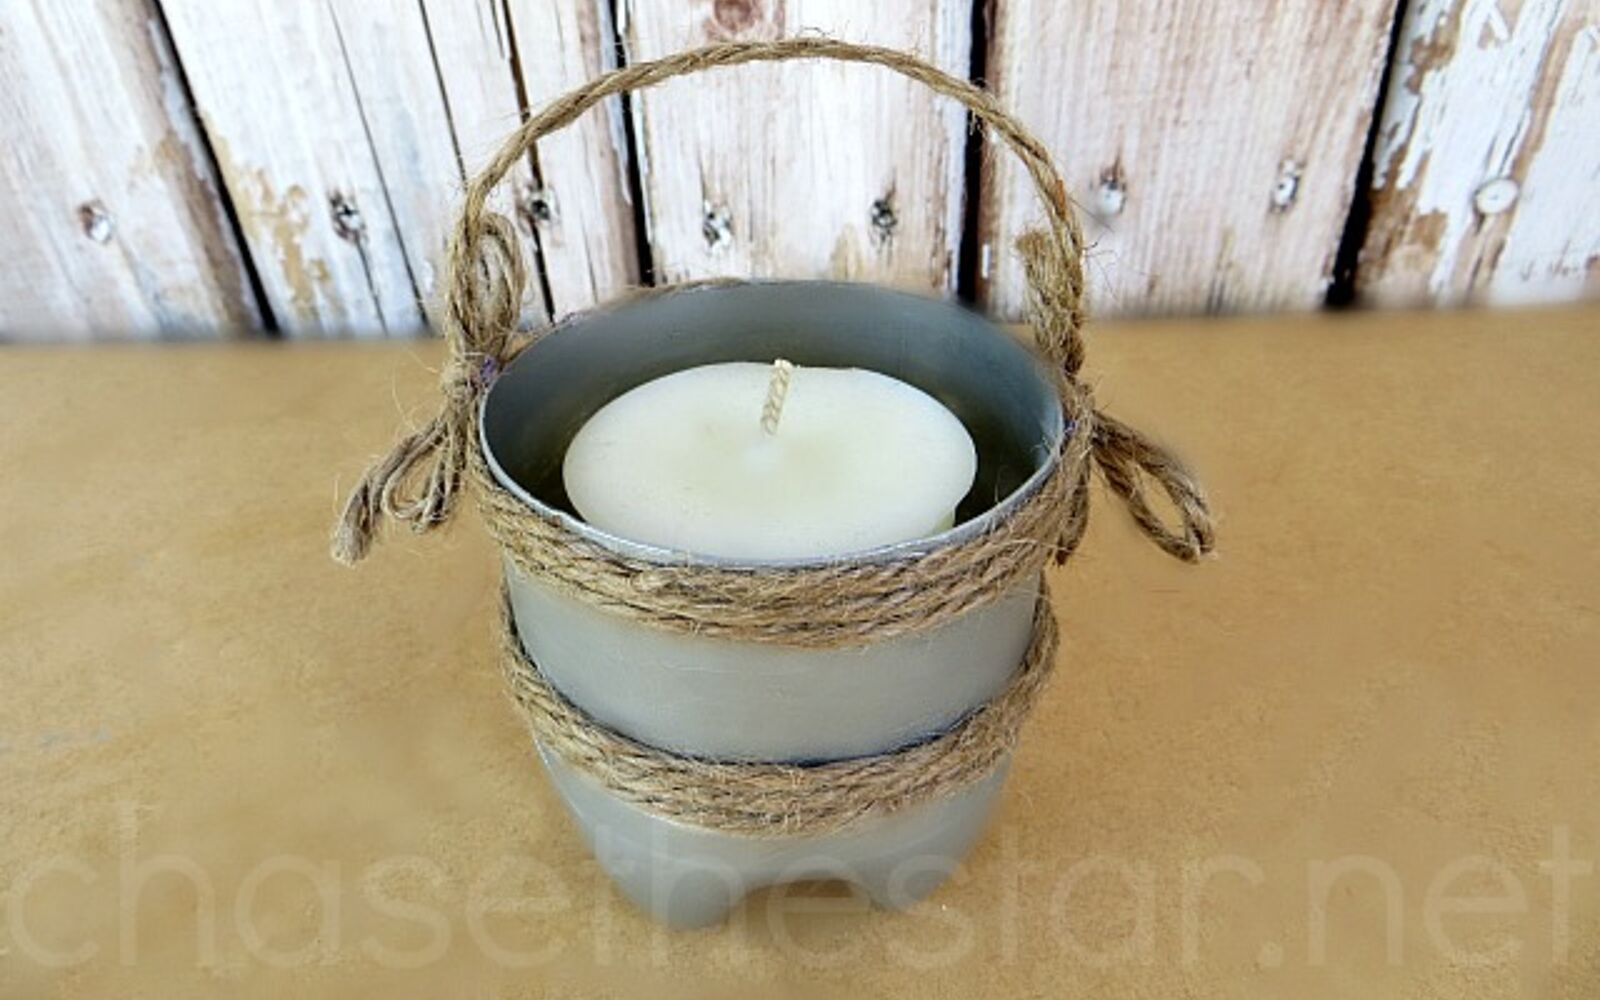 s 30 useful ways to reuse plastic bottles, Revamp them as rustic candles holders